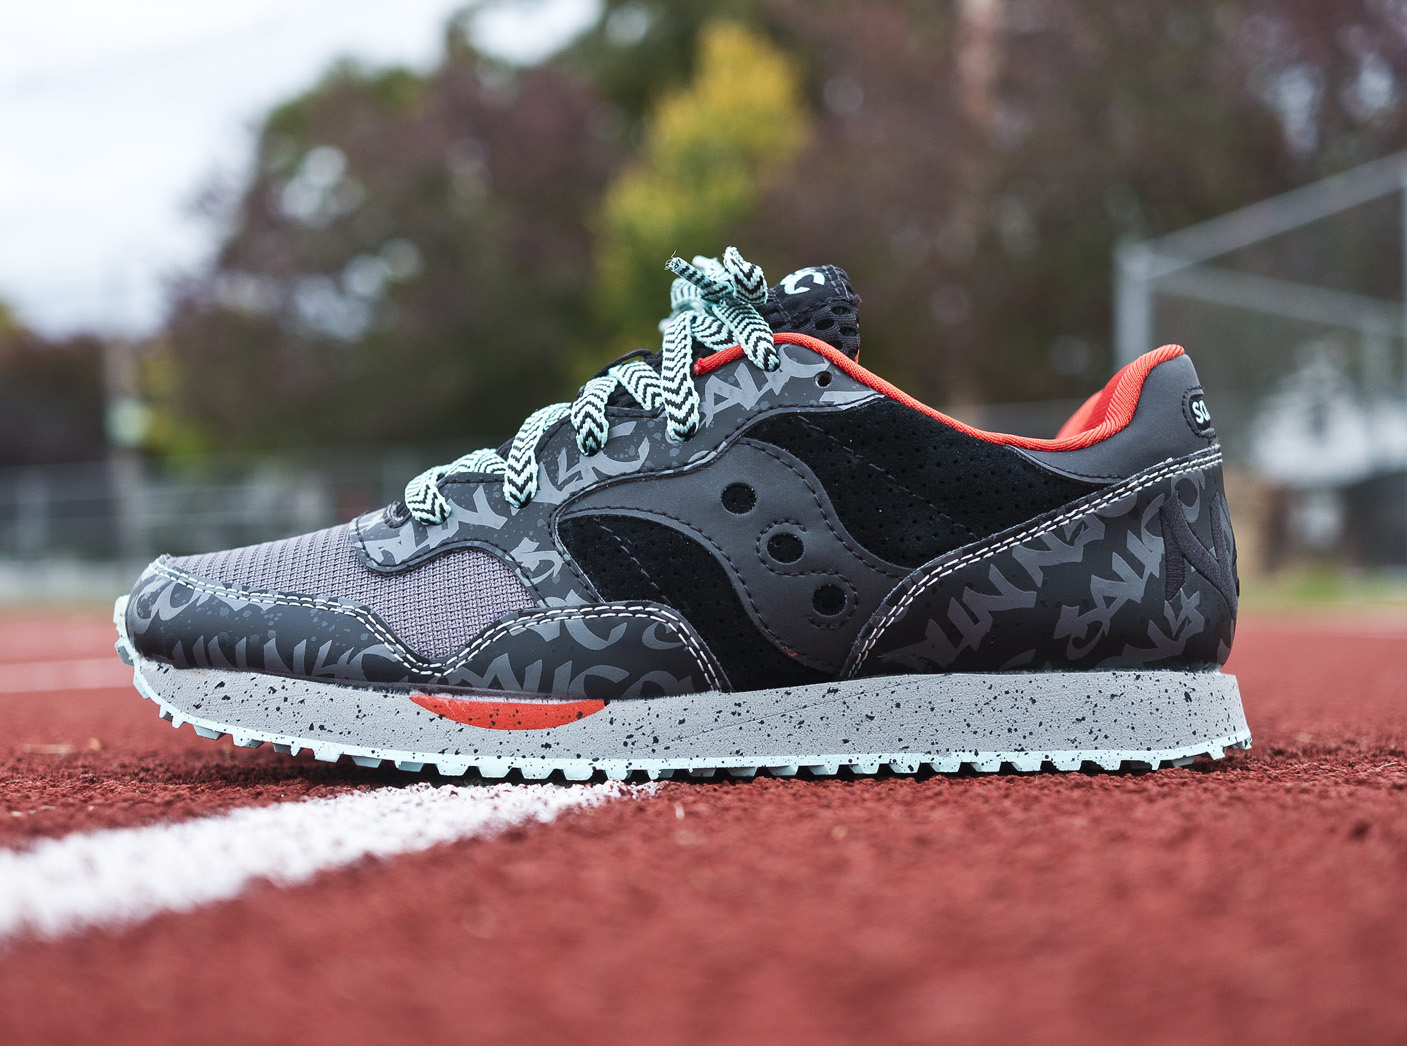 Saucony s DXN Trainer is ready for the NYC Marathon  1a6a2e79b605